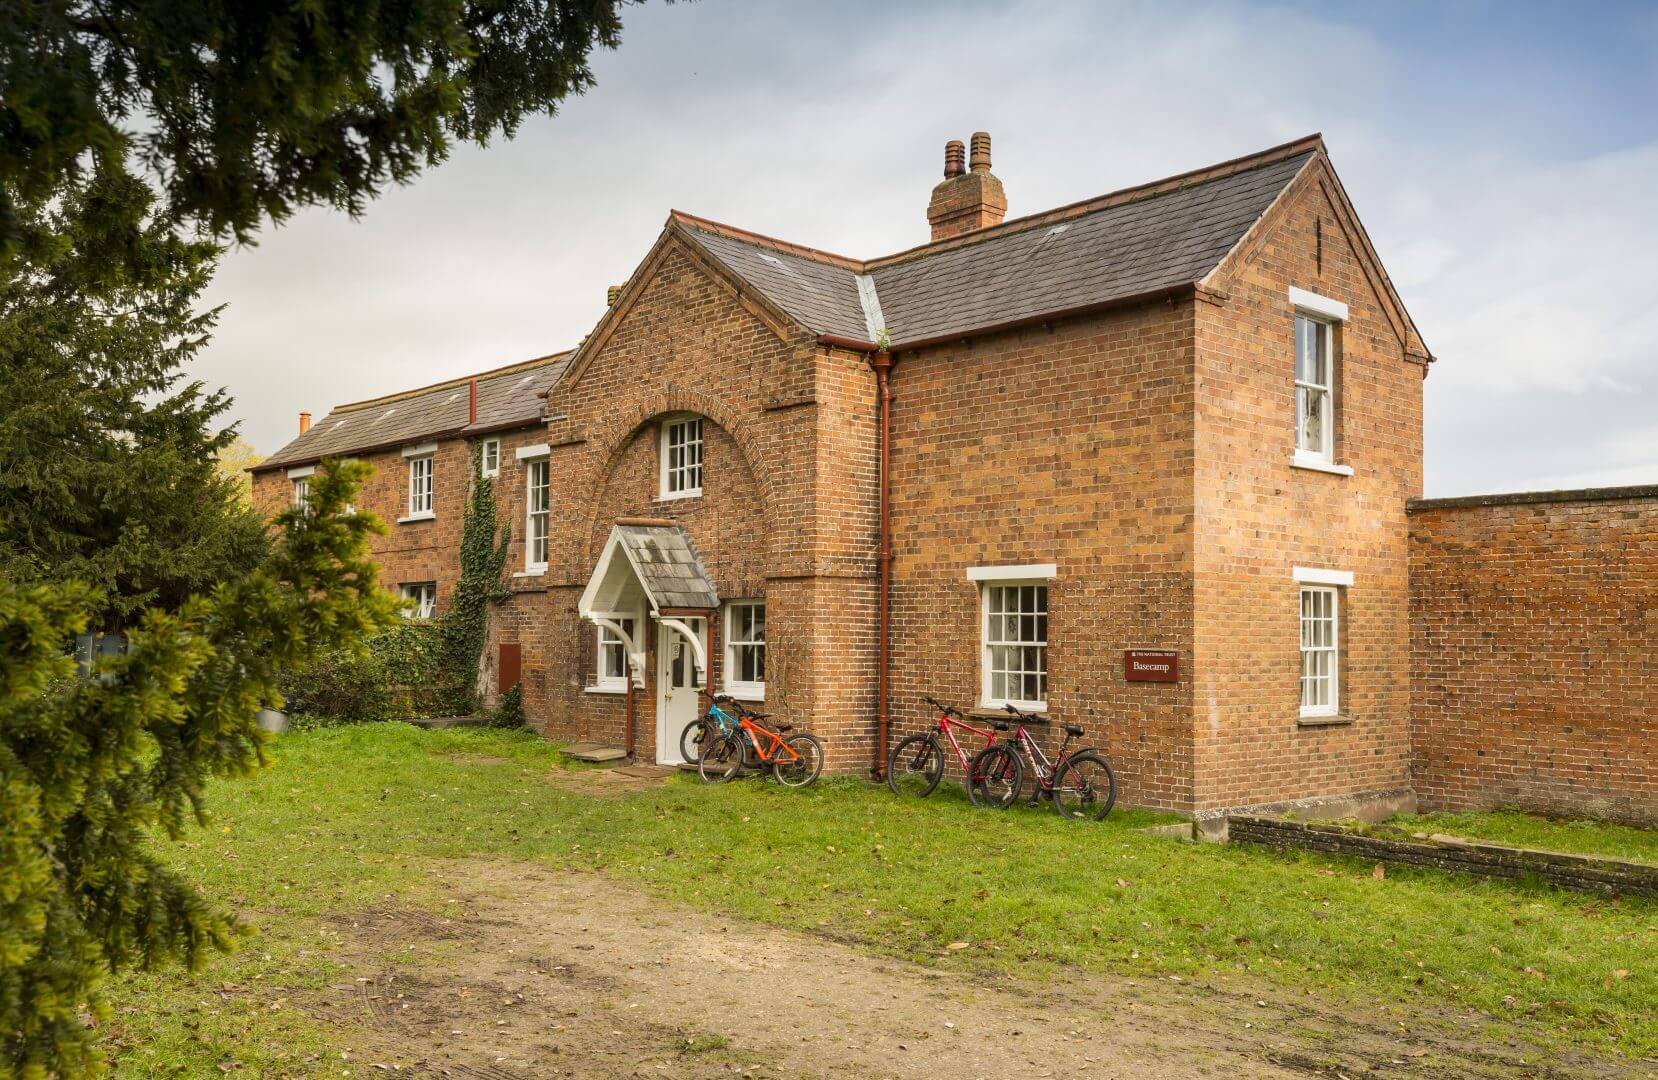 Clumber park bunkhouse group accommodation